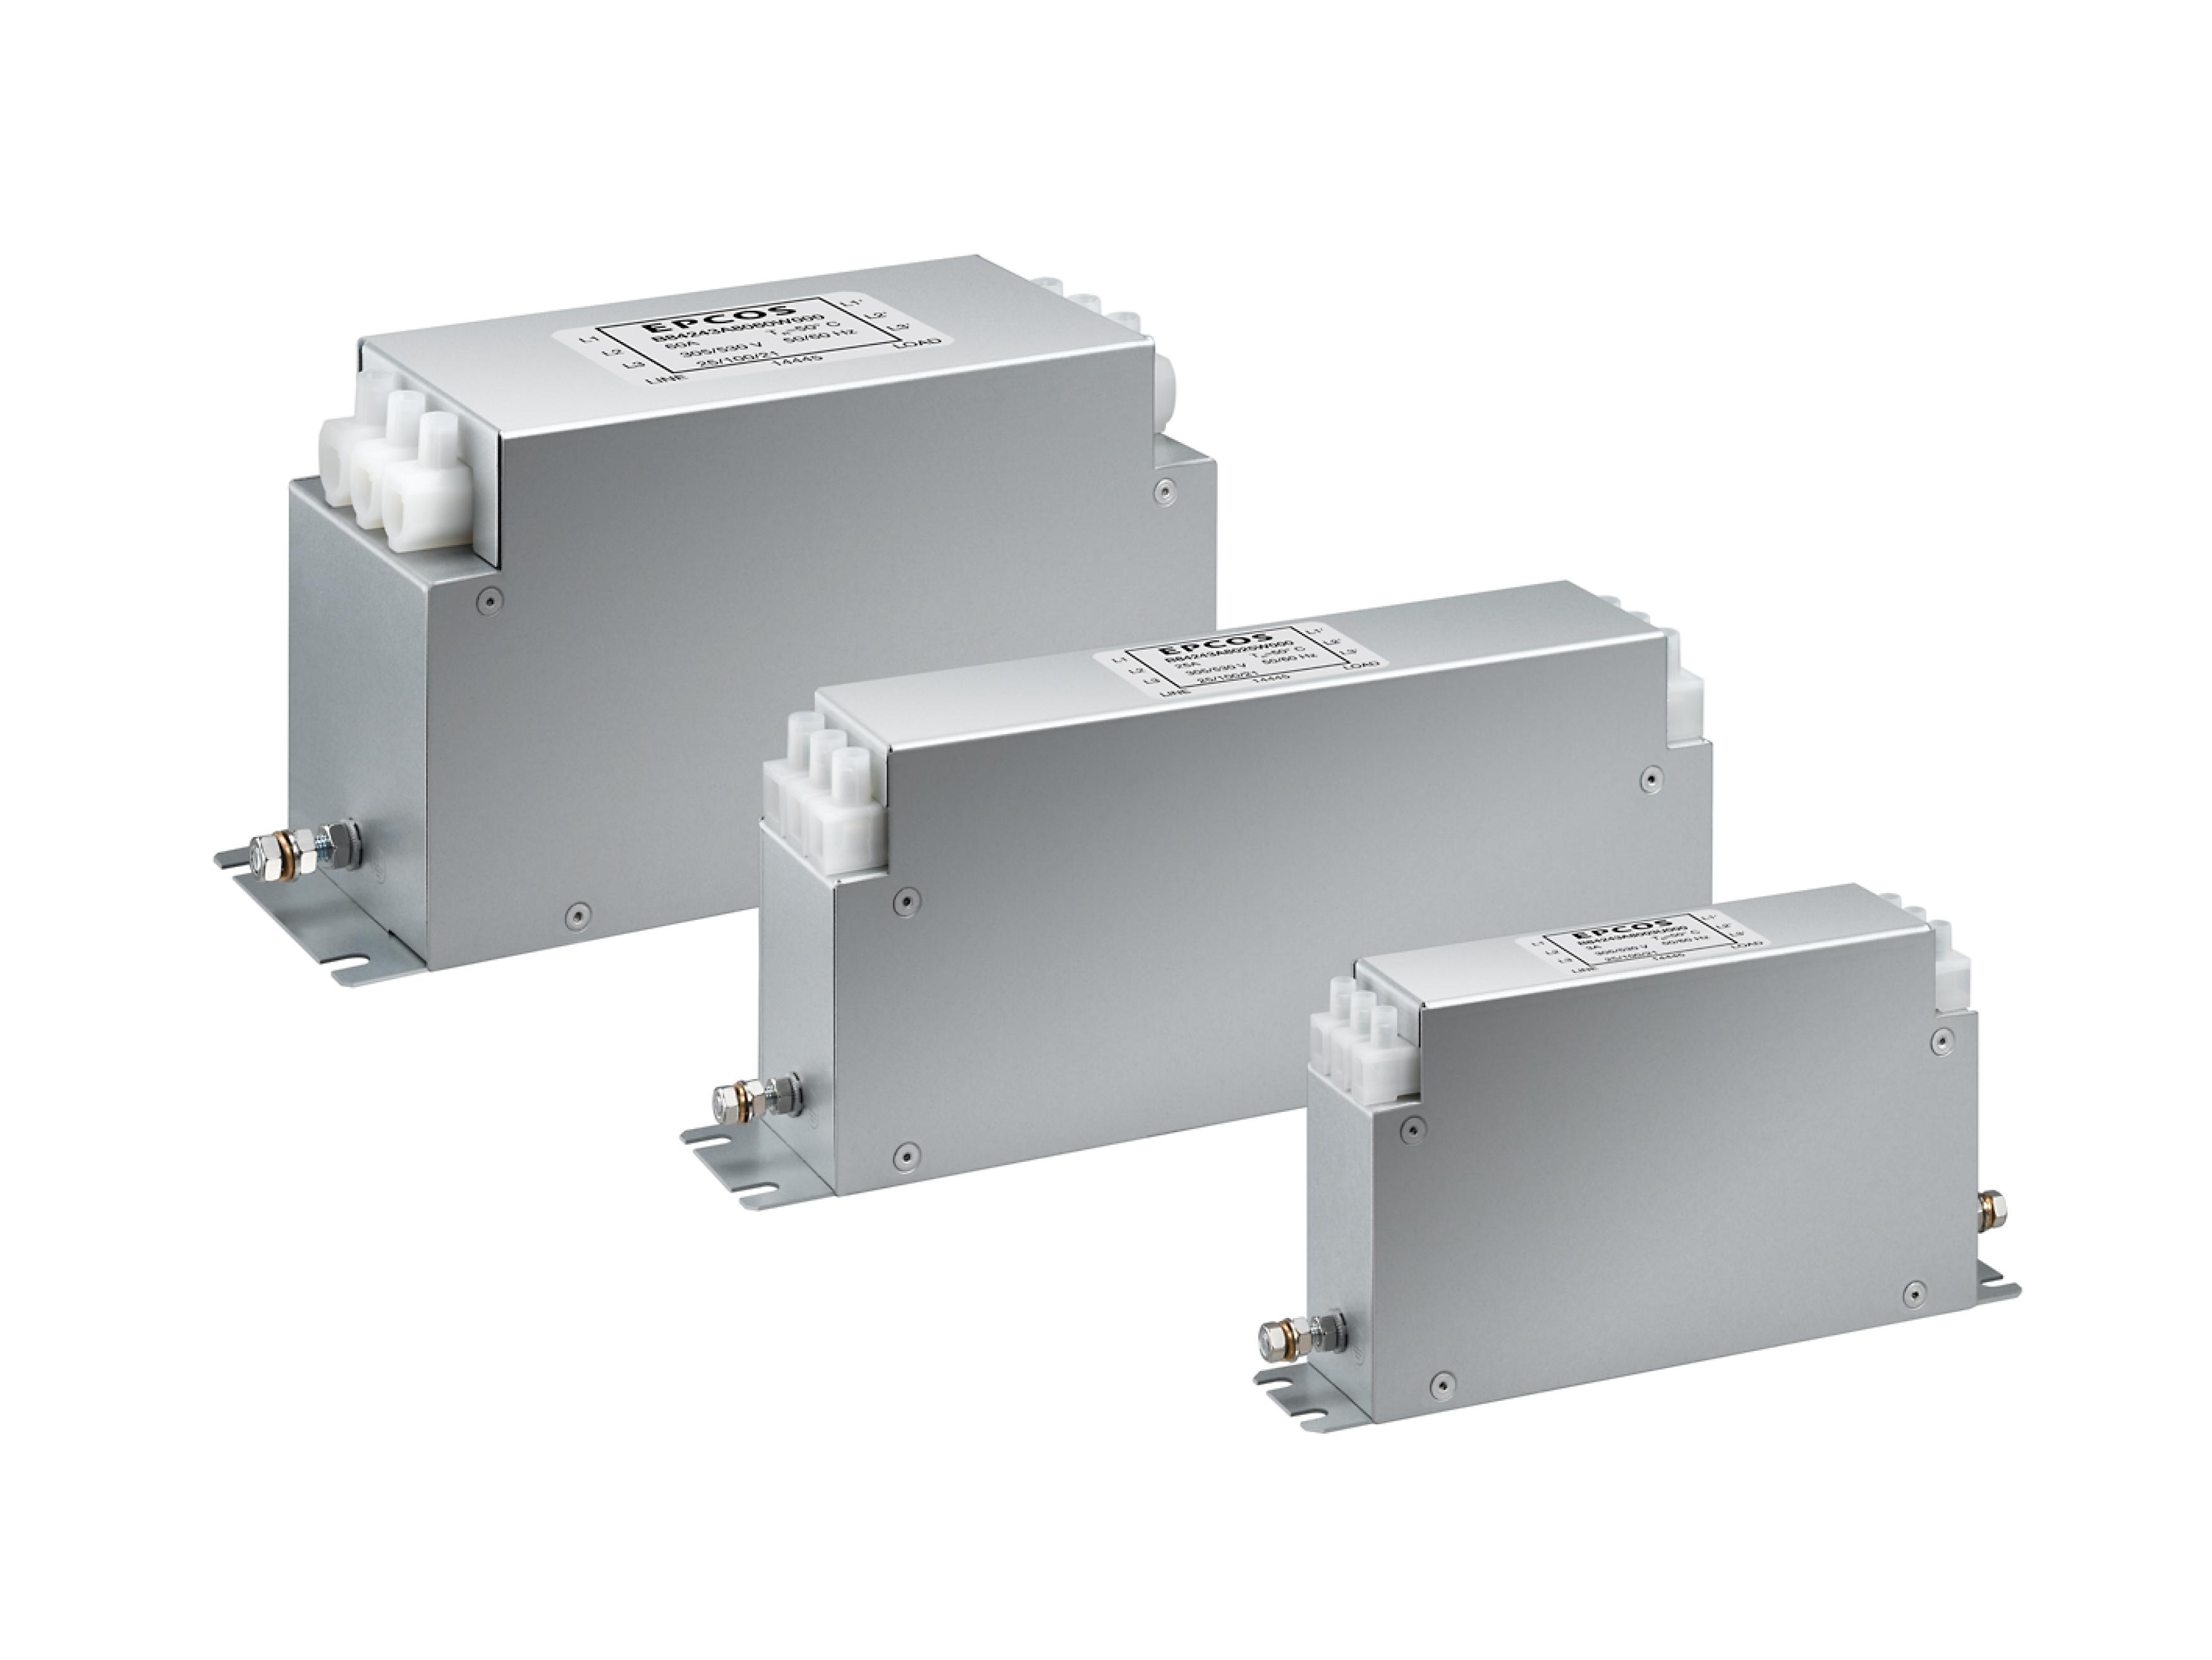 3-line EMC Filters Satisfy Current Requirements up to 280 A